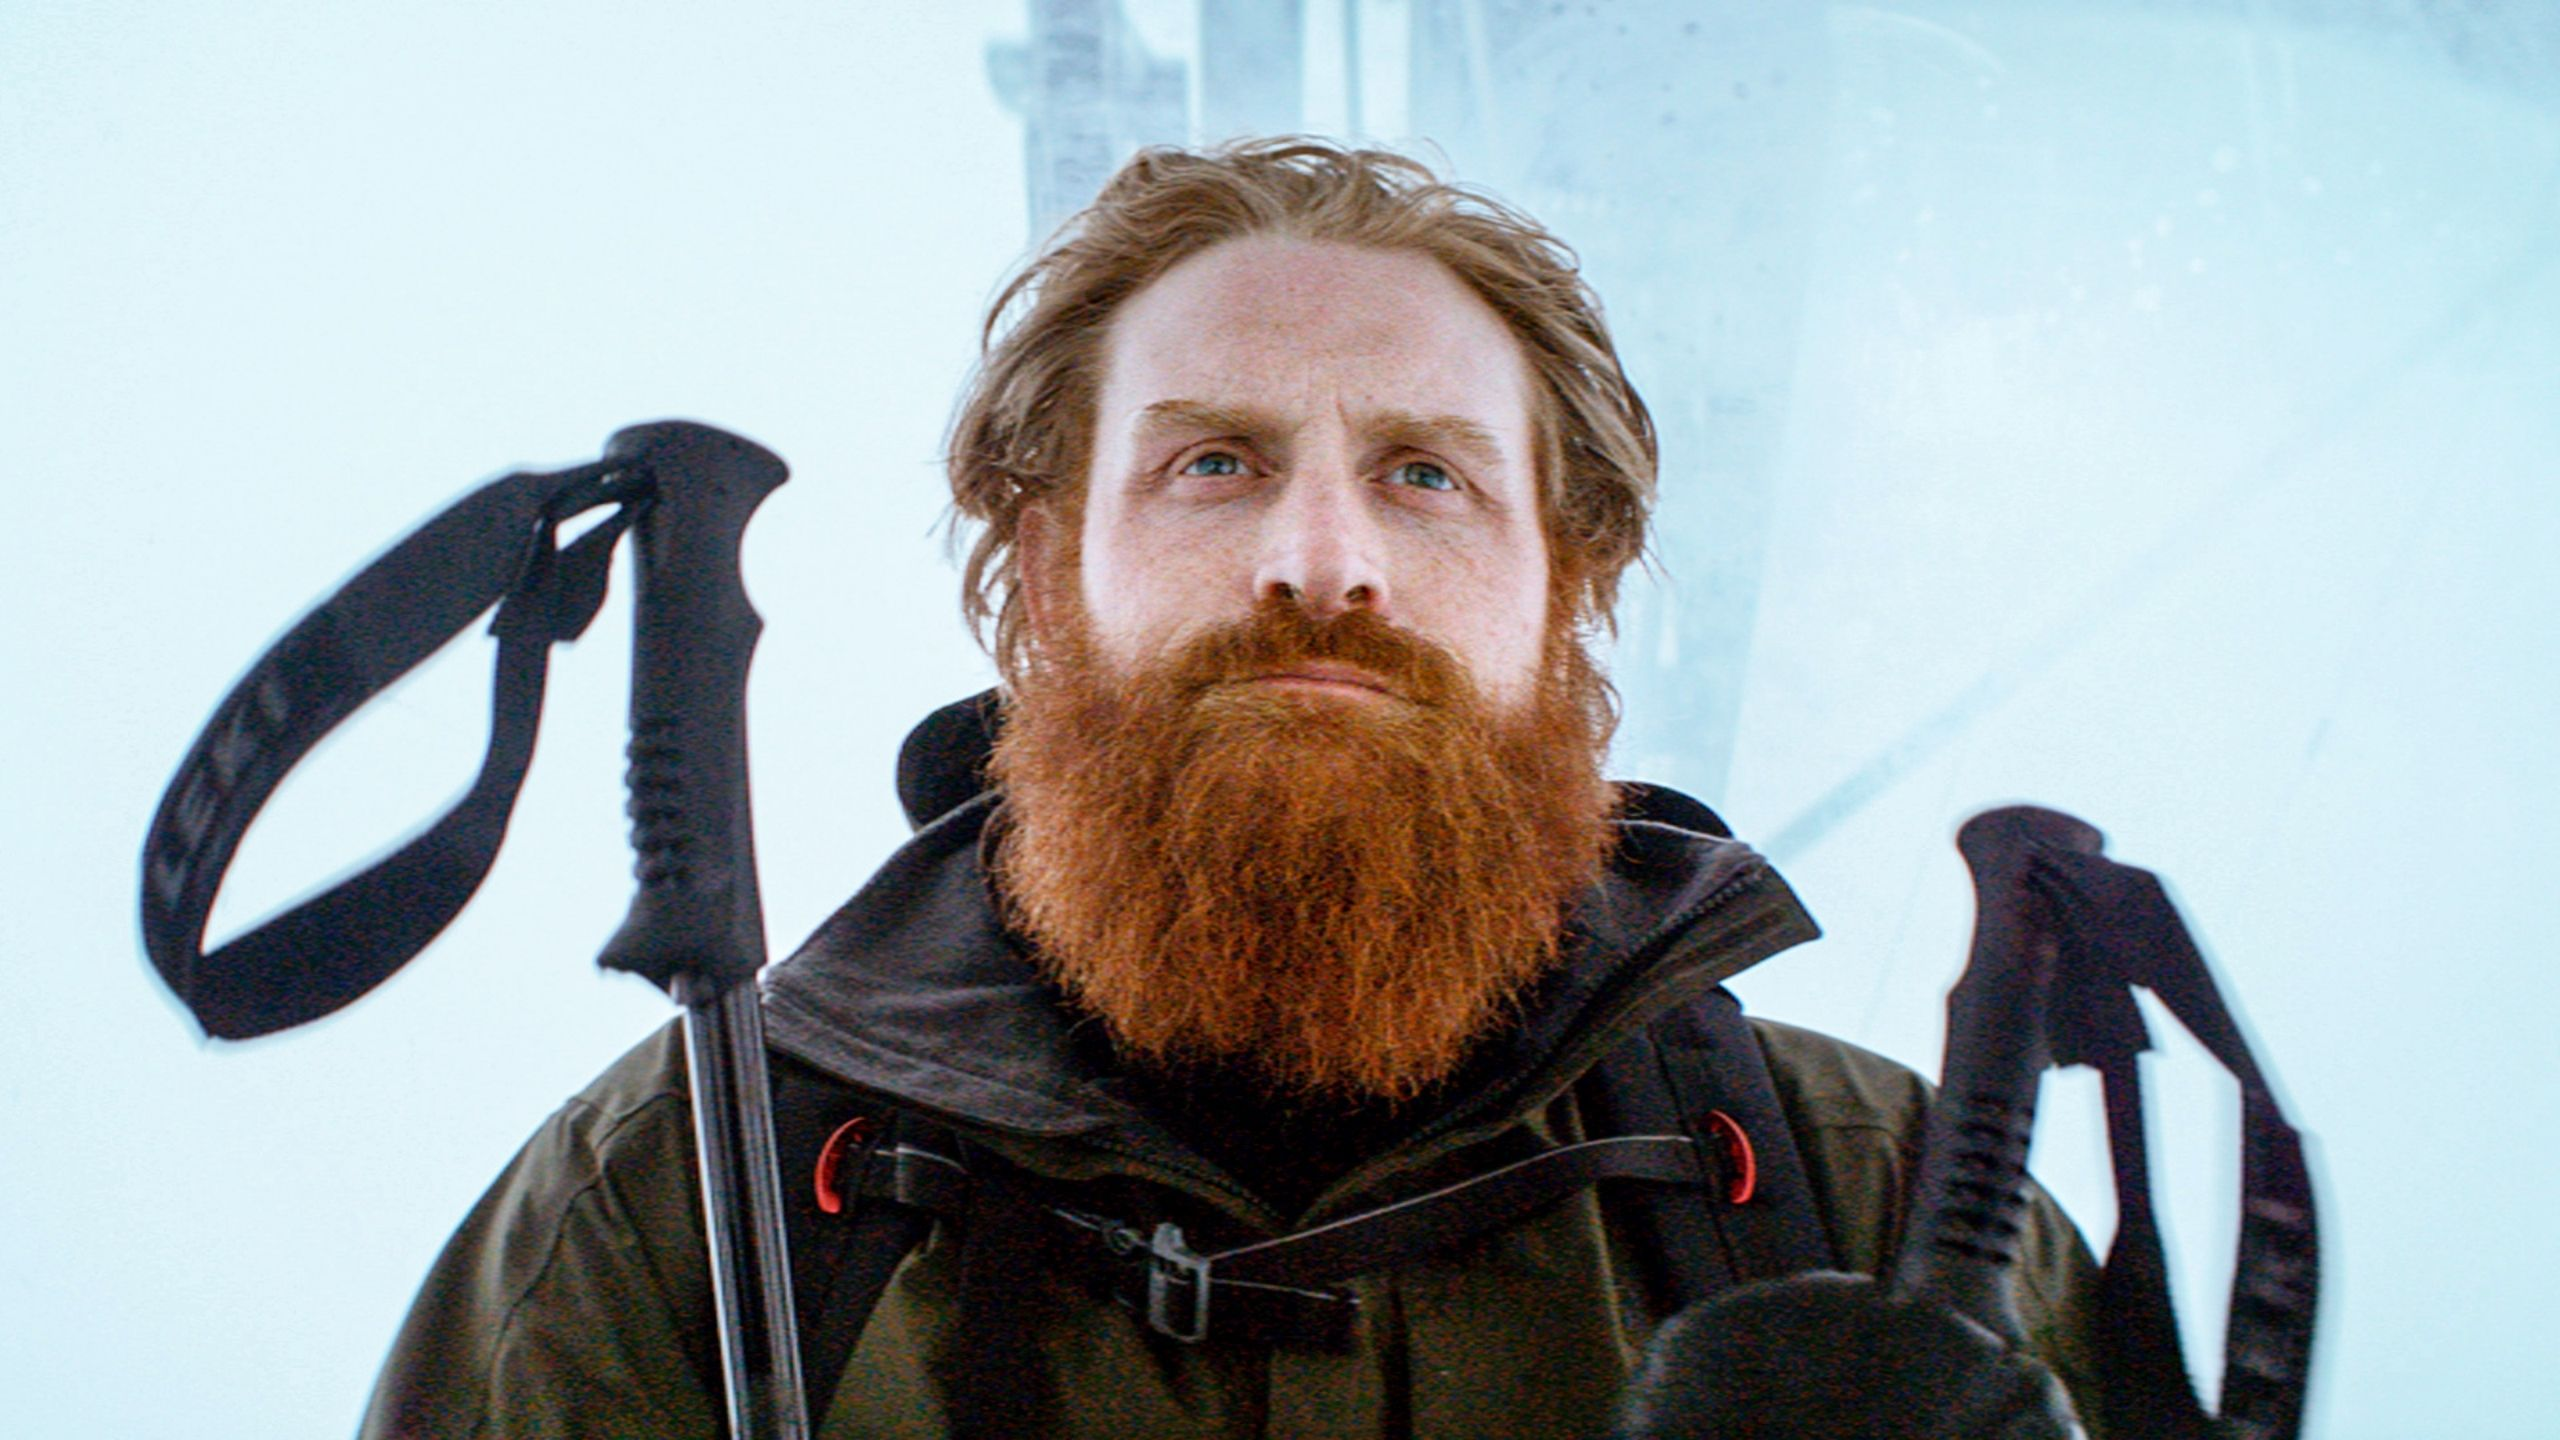 A bearded white man stands in front of a wall of ice, ski sticks in hand.